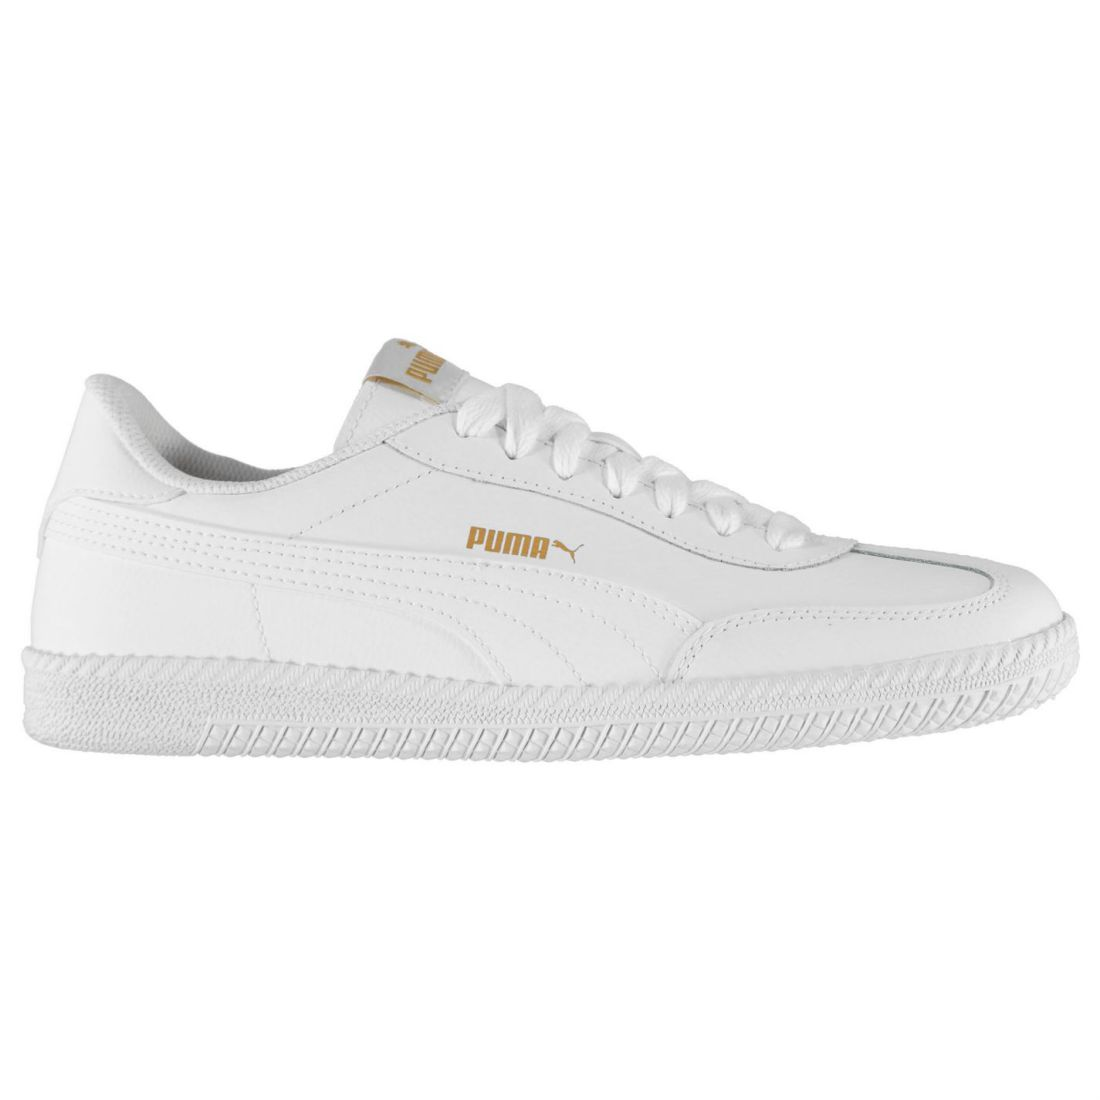 f862470cbfc2 Details about Puma Mens Astro Cup Leather Trainers Court Lace Up Padded  Ankle Collar Tongue